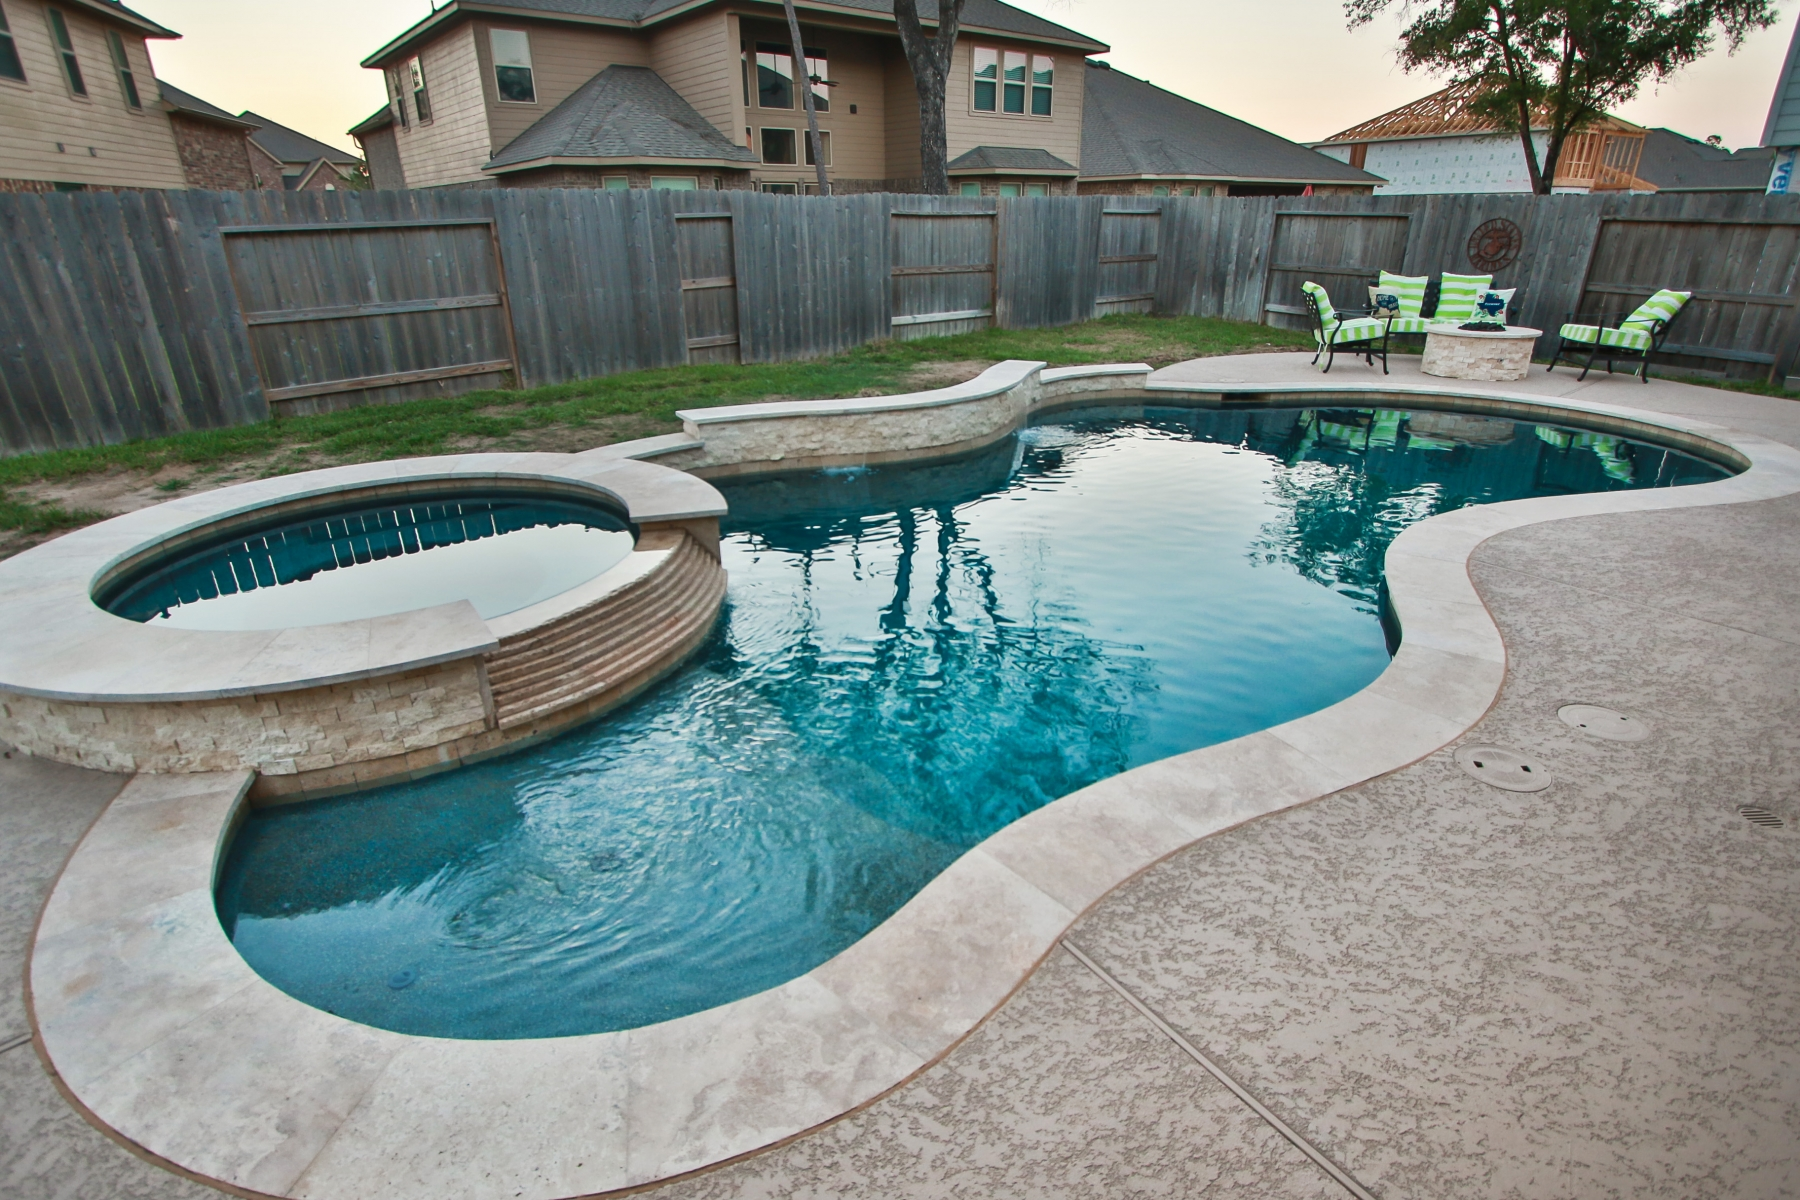 Freeform Pool with Tanning Ledge and Poolside Fire Pit and Seating Area